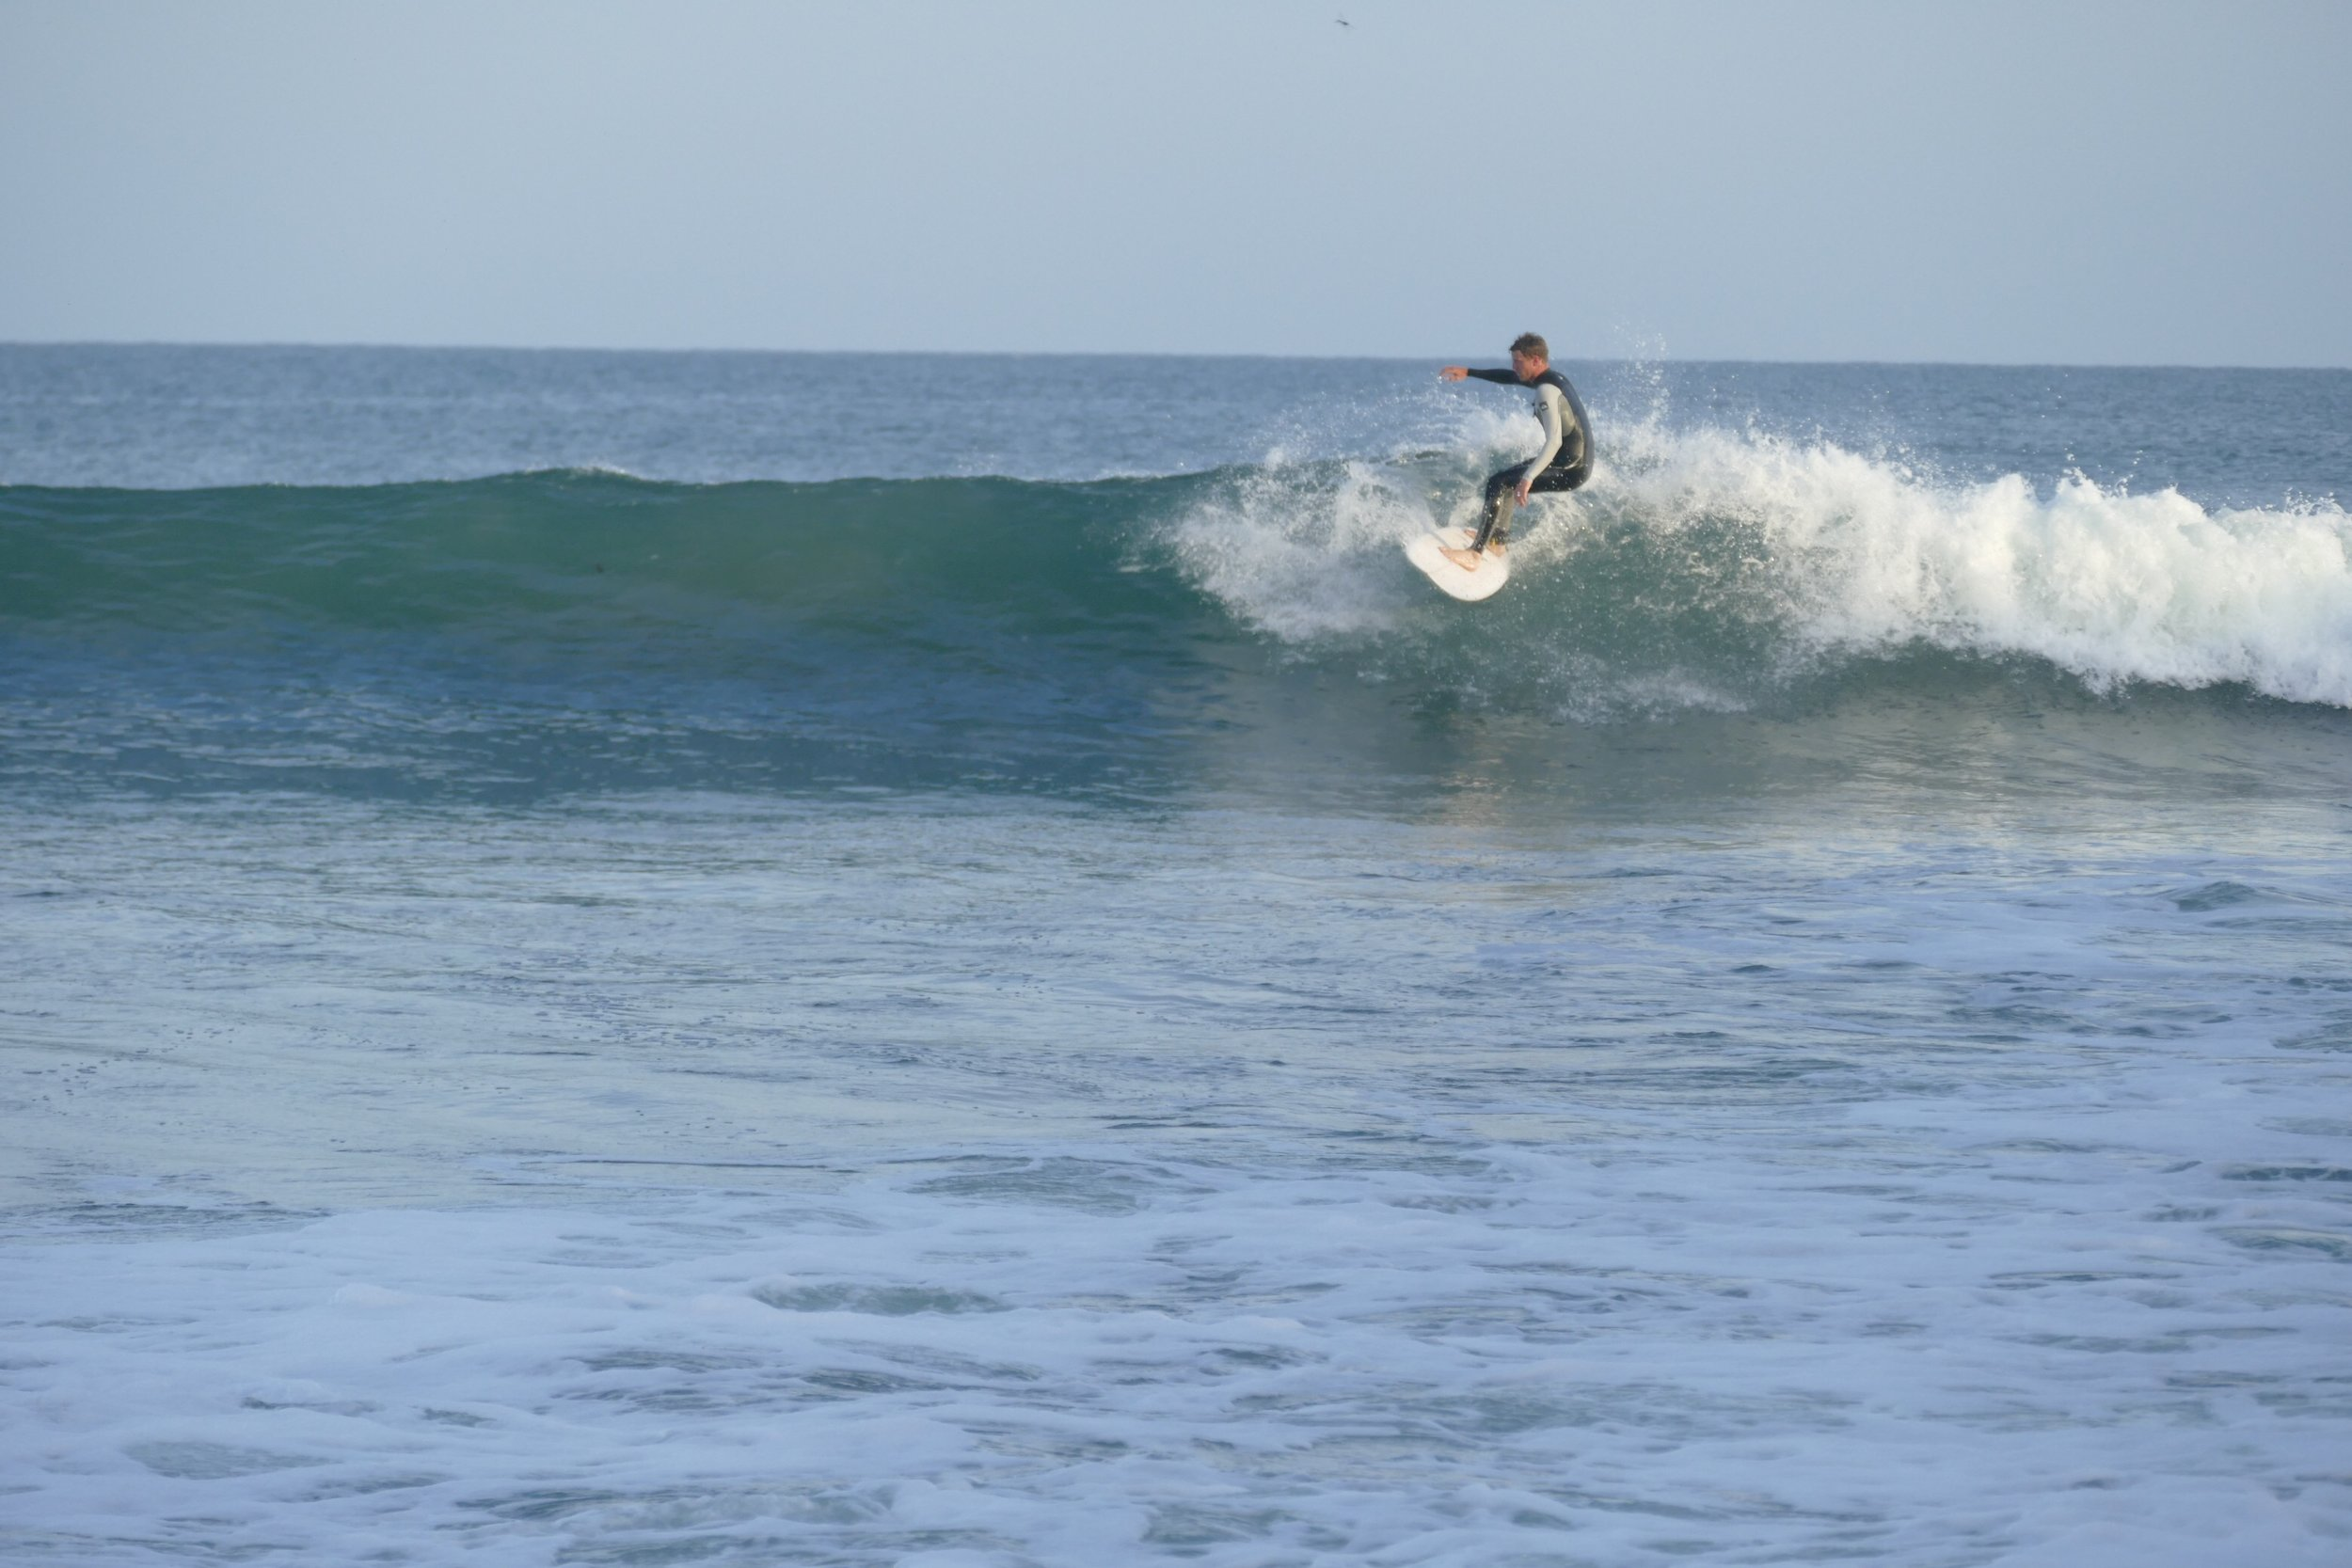 Another Corey. Given the level of surfing, these were freebies.